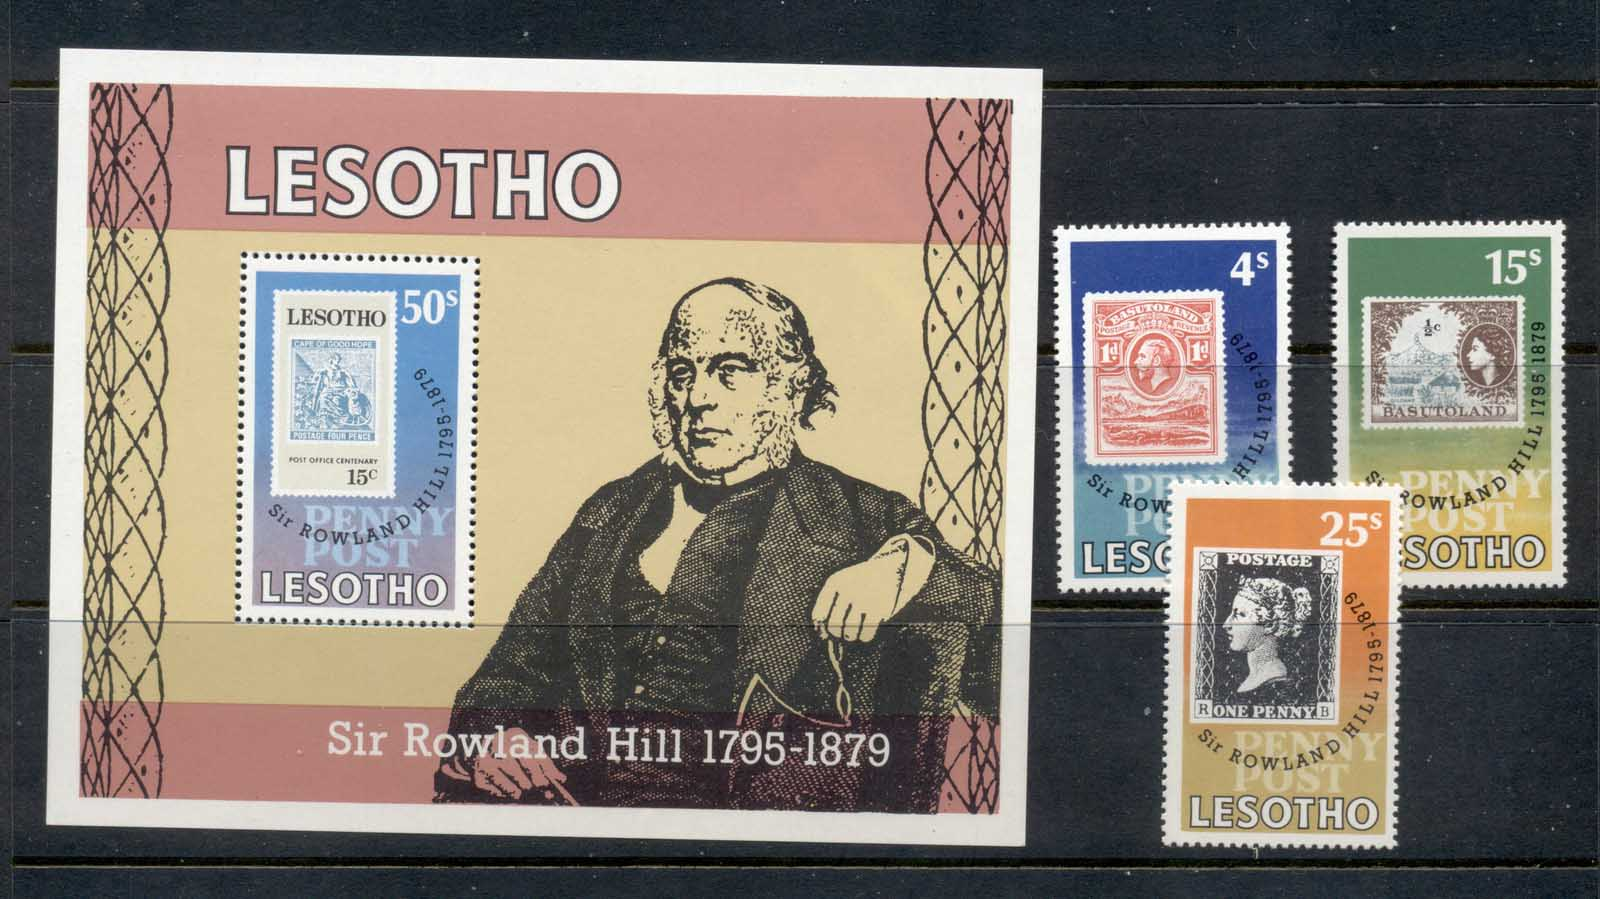 Lesotho 1979 Rowland Hill + MS MUH